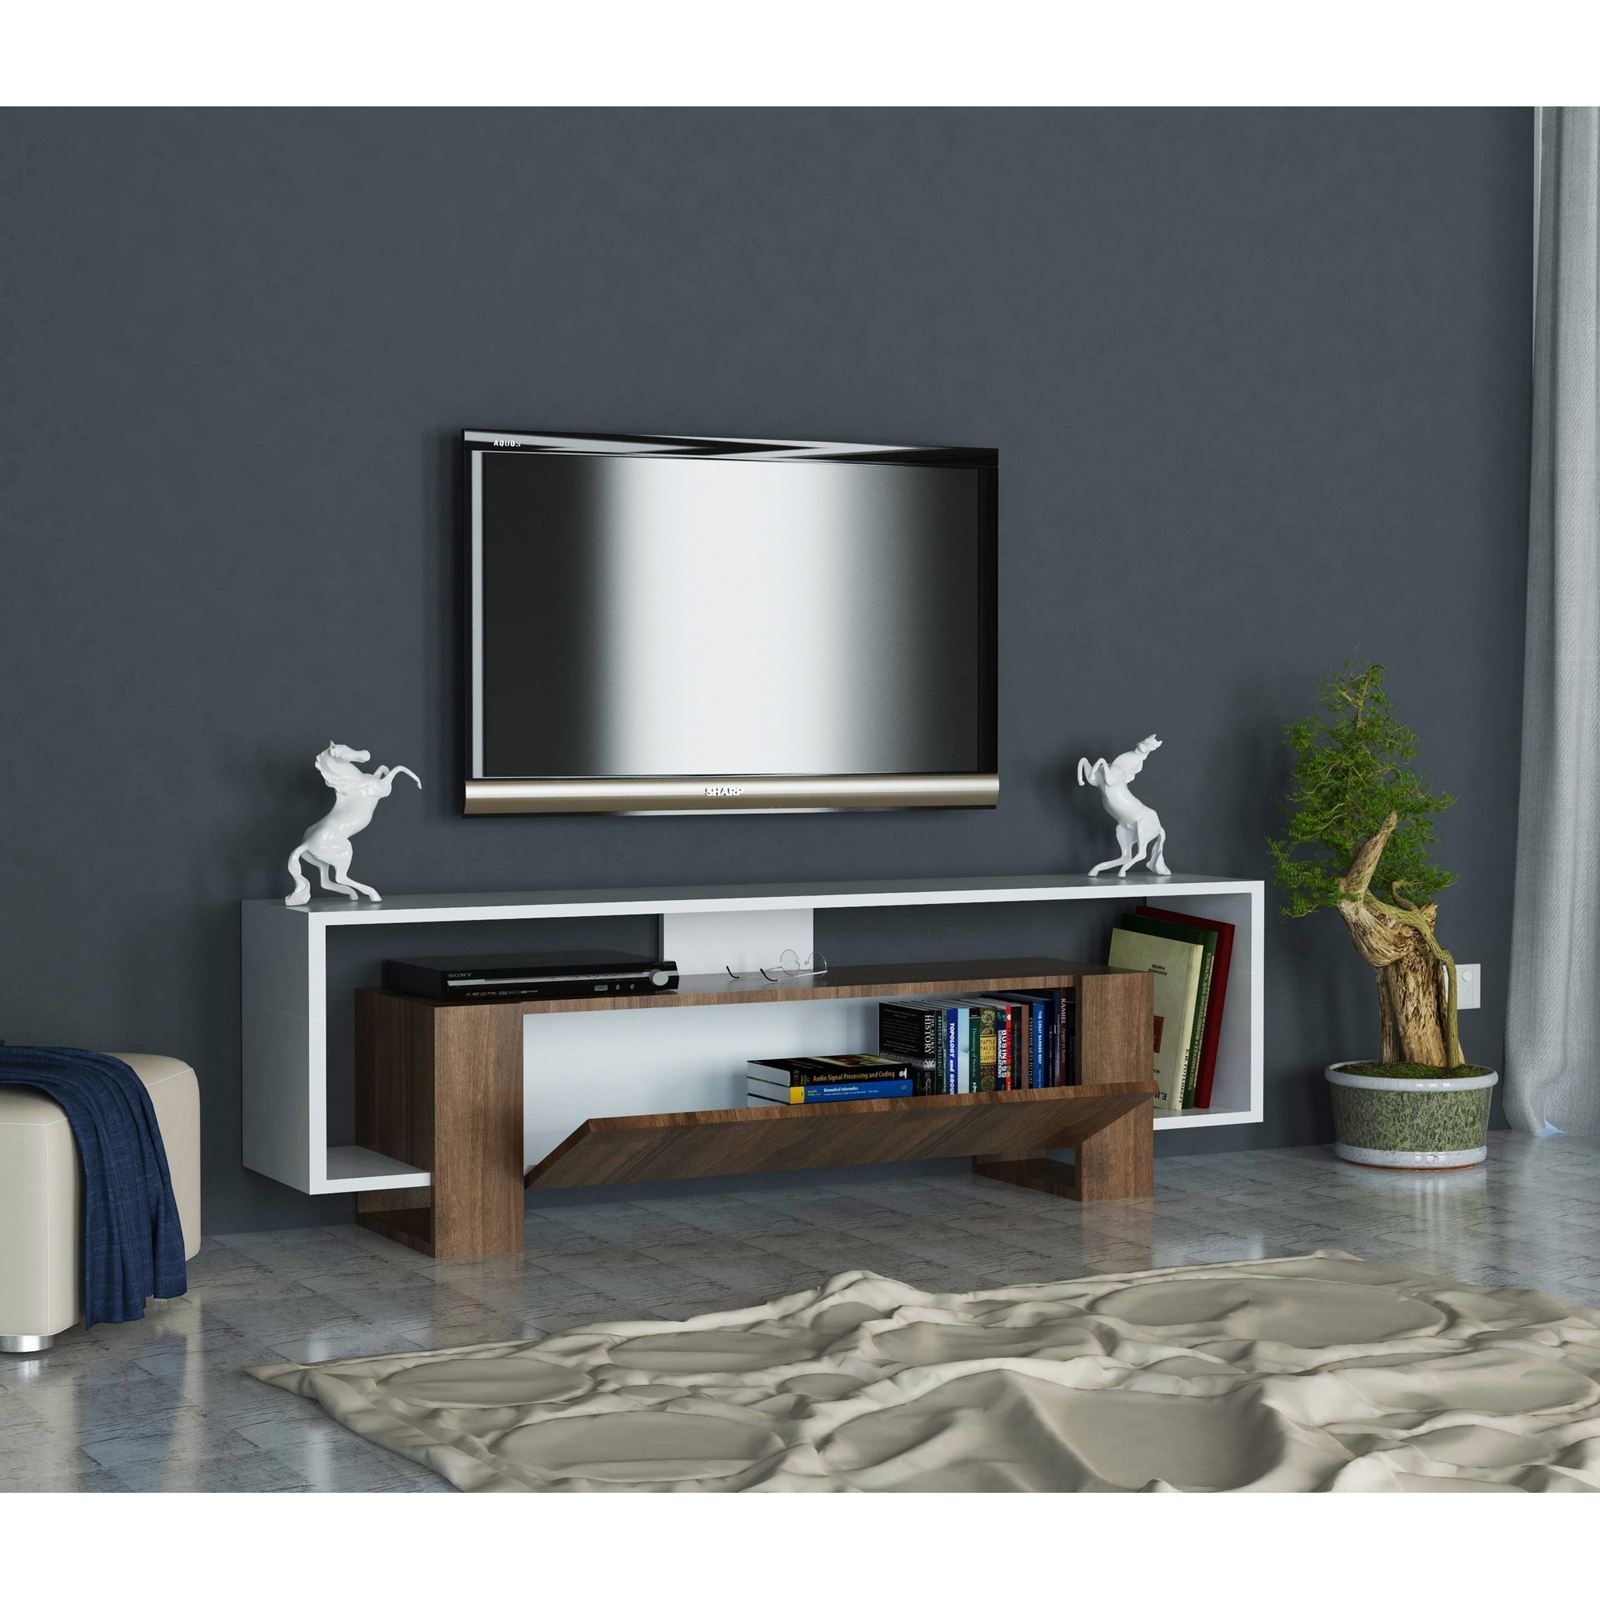 woody fashion meuble tv bicolore brandalley. Black Bedroom Furniture Sets. Home Design Ideas